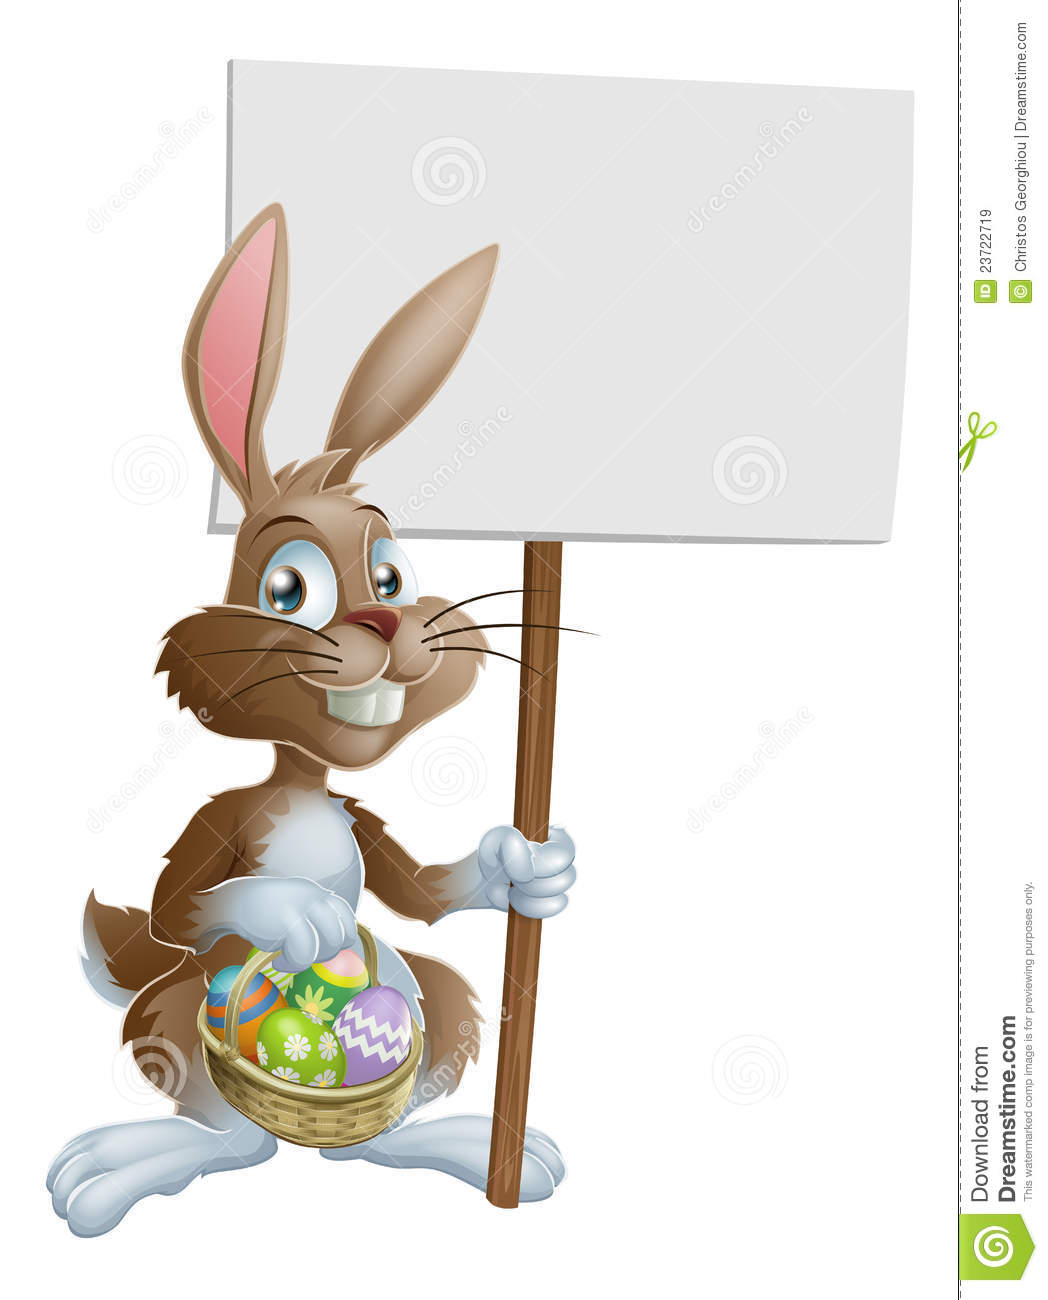 Easter Bunny Rabbit Holding Sign Royalty Free Stock Images